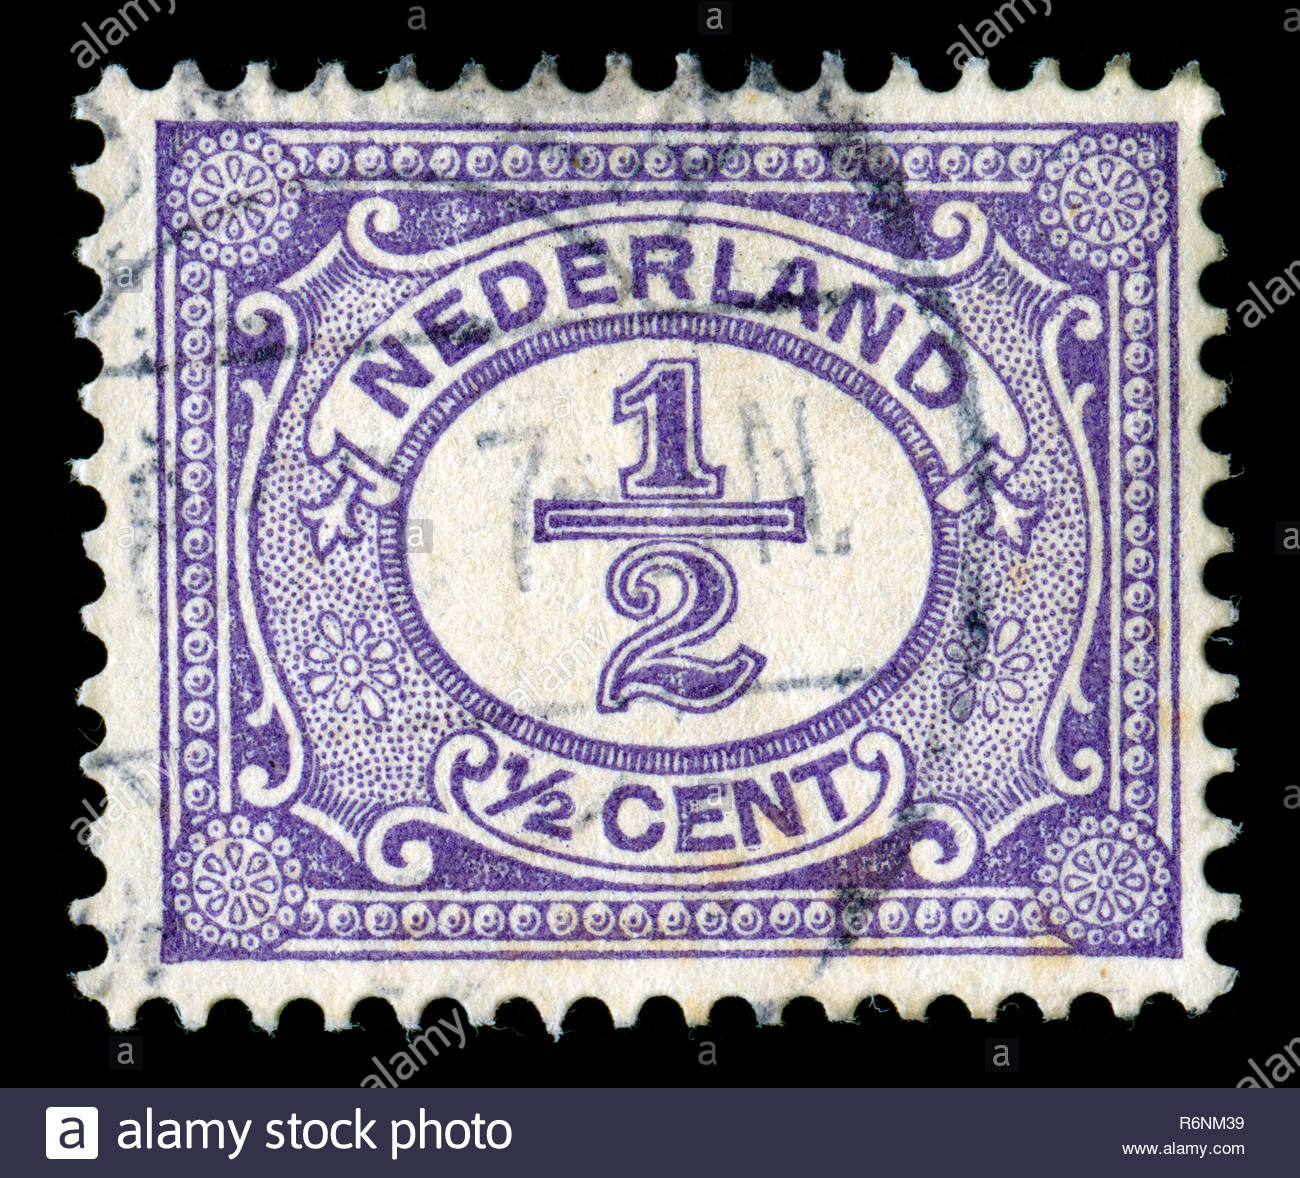 Postage Stamp From The Netherlands In Figure Series Issued 1899